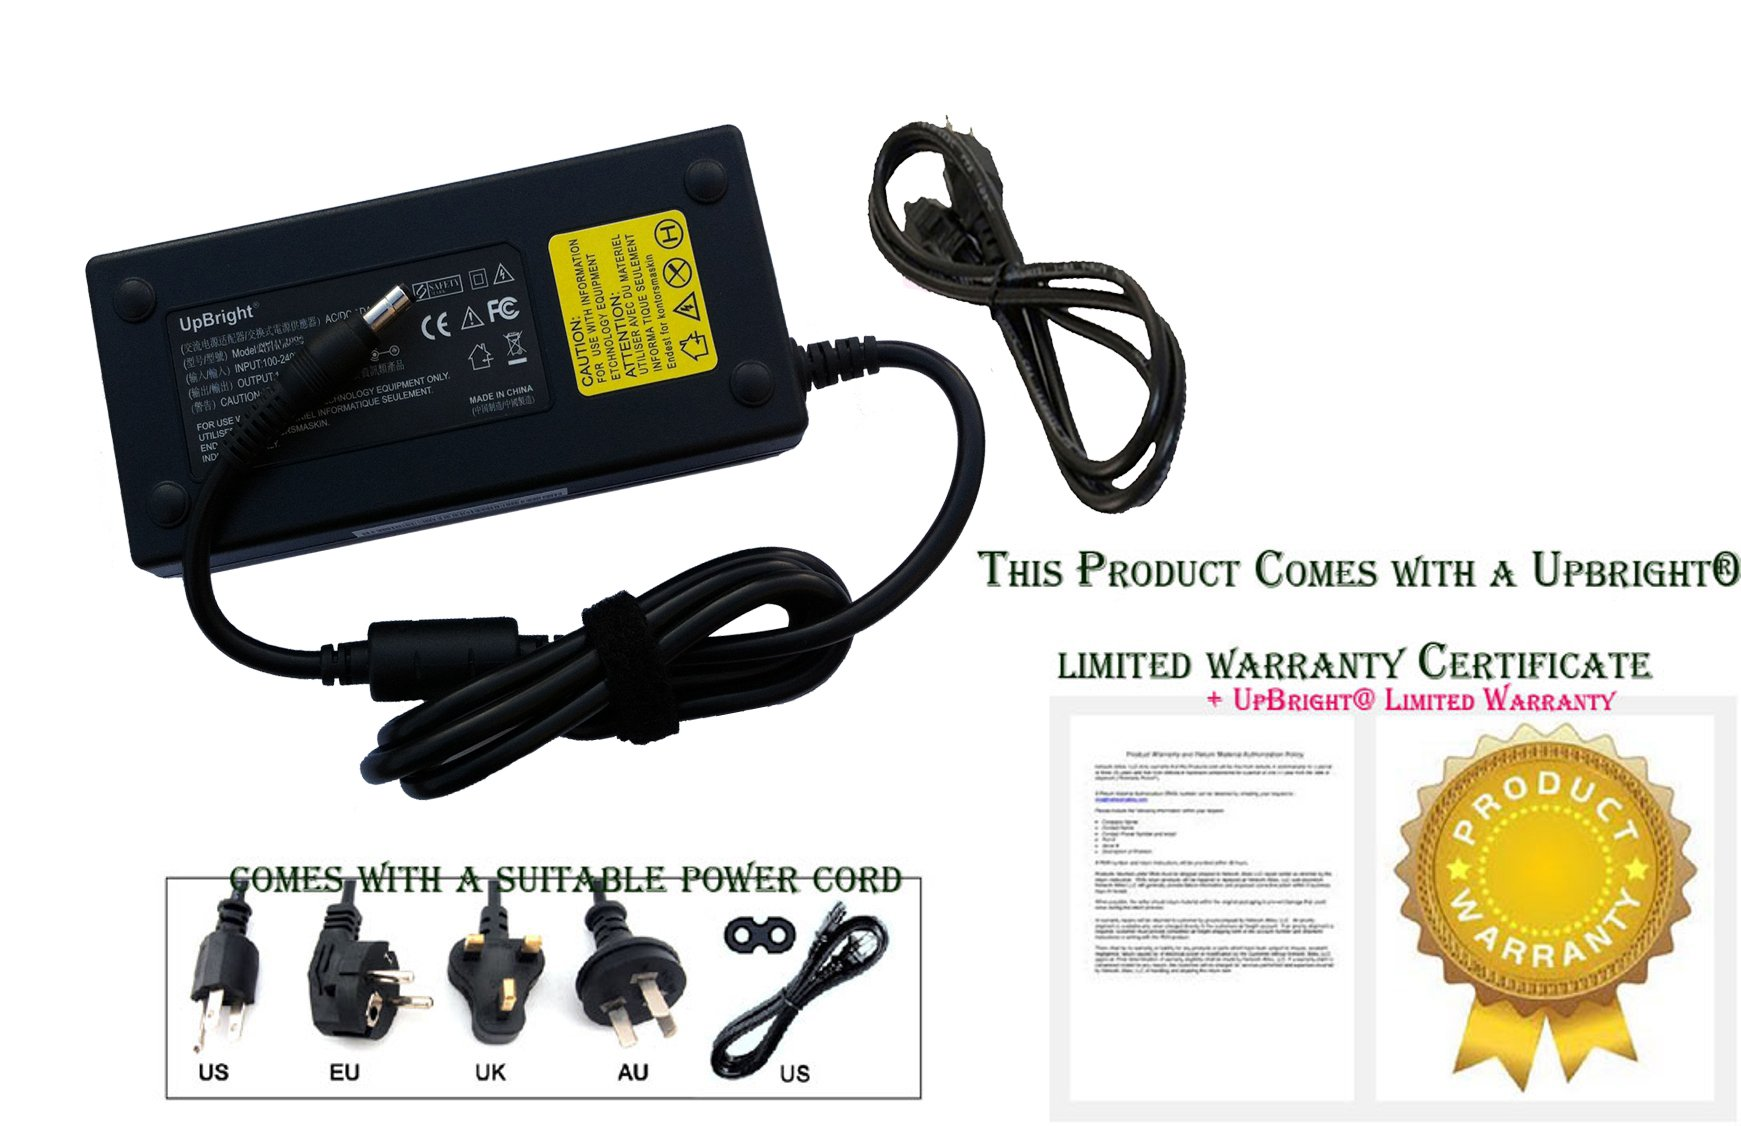 UpBright NEW AC / DC Adapter For HP Pavilion 23-q200 23-q214 T4A02AA T4A02AAR T4A02AA#ABA T4A02AAR#ABA 23-q255kr T0R44AA T0R44AA#ABA 23-q135kr P4M90AA 23'' All-in-One Laptop Notebook PC Charger